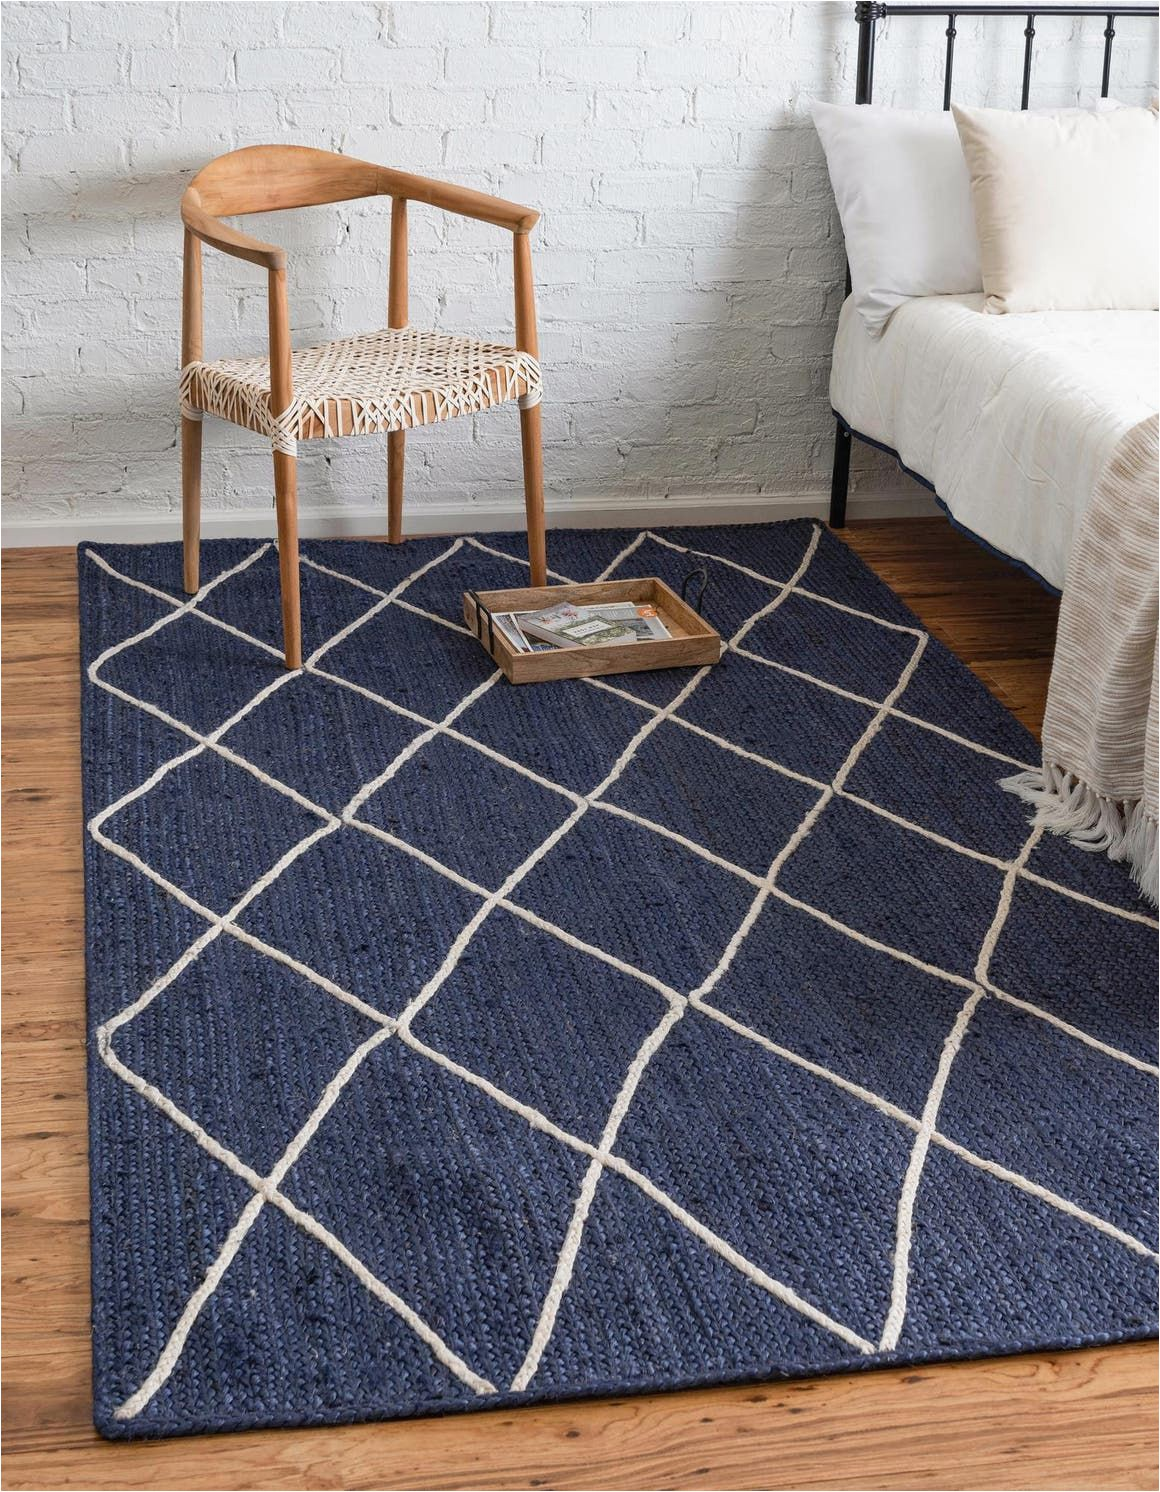 Overstock Rugs 8×10 Blue Braided Jute Navy Blue 9×12 area Rug In 2020